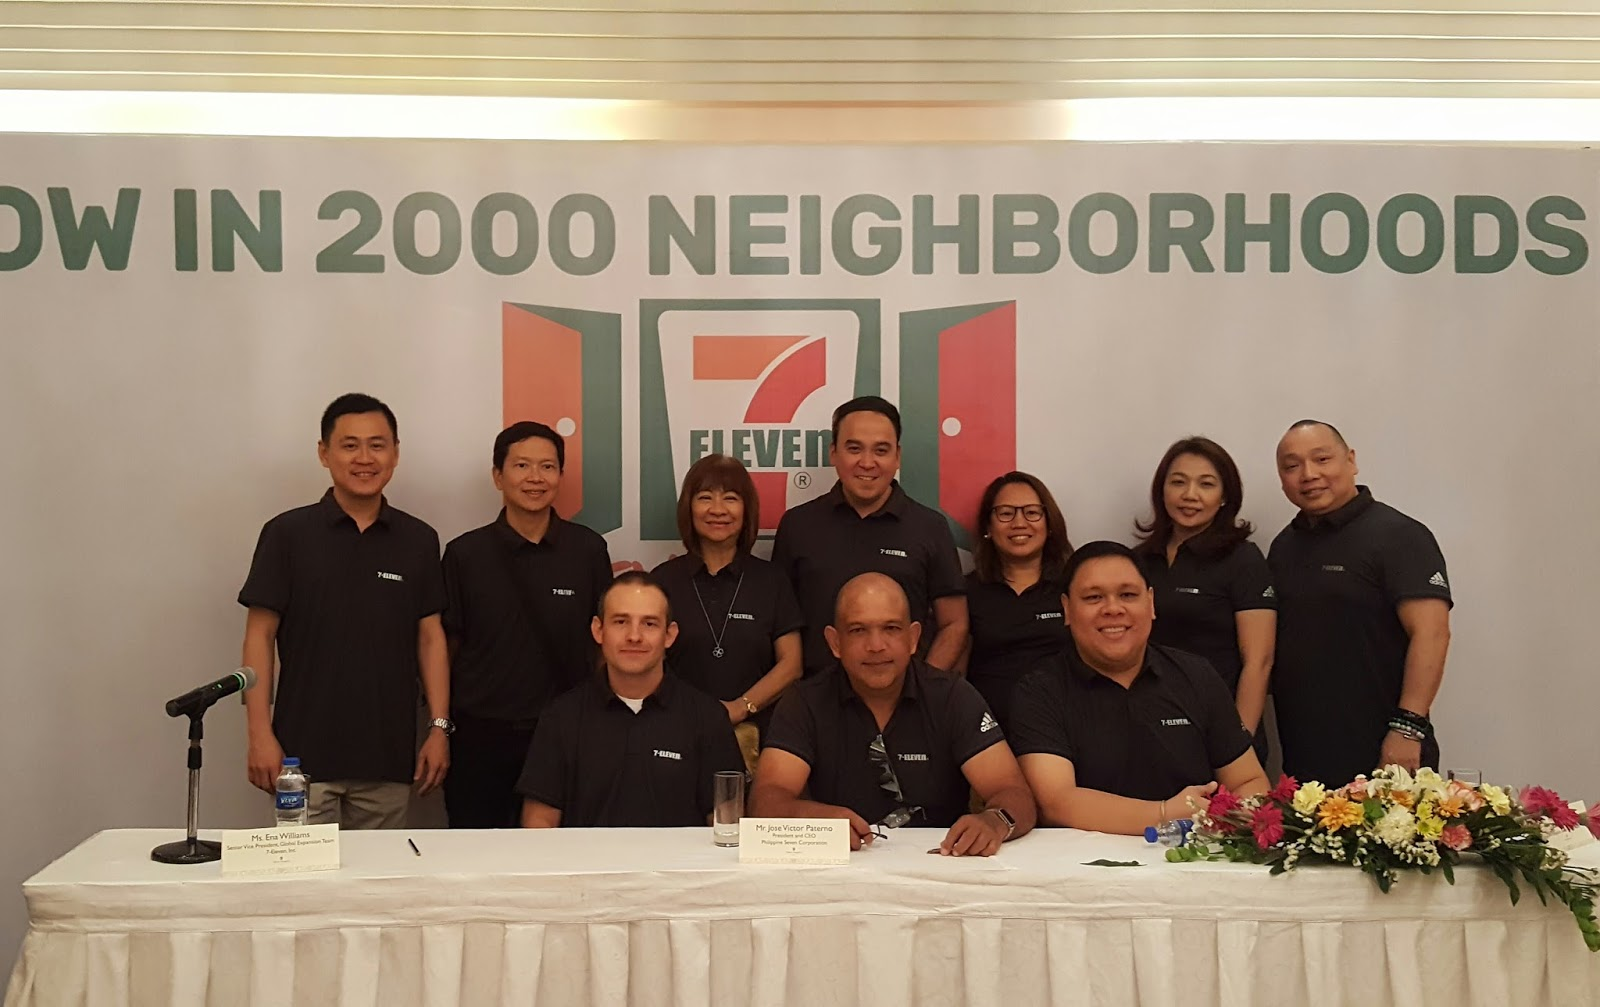 7 Eleven And Its 2 000th Store Here In The Philippines